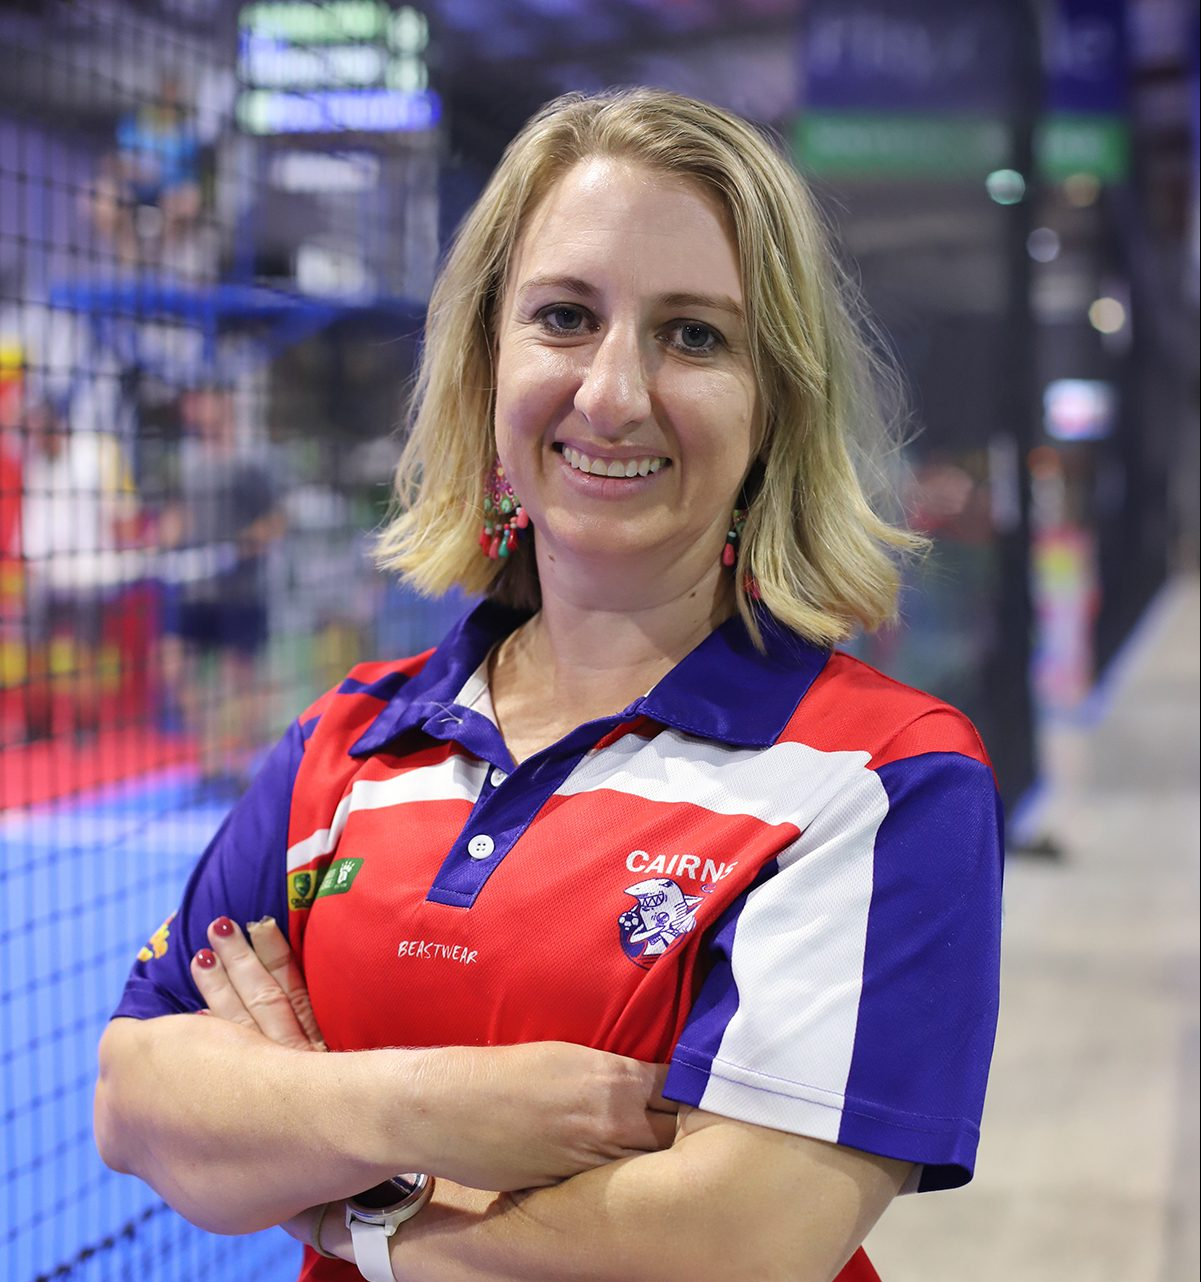 Cairns Indoor Sports - Jill Owner and Director